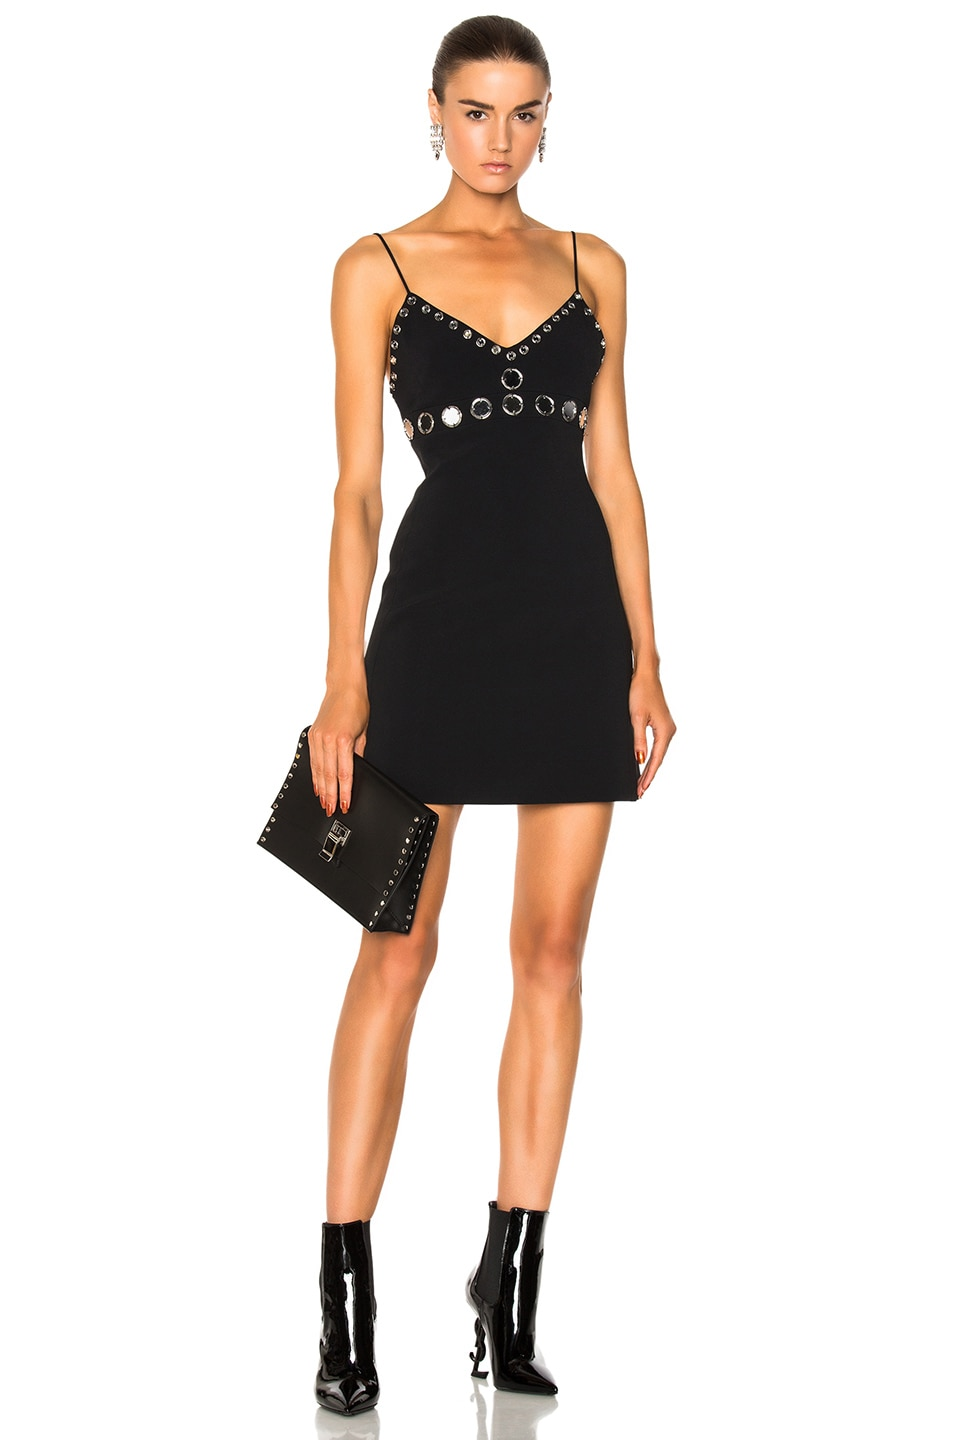 Factory Outlet Cheap Online embellished mini dress - Black DAVID KOMA Visit New Outlet 2018 New With Paypal Sale Online xNMkN6